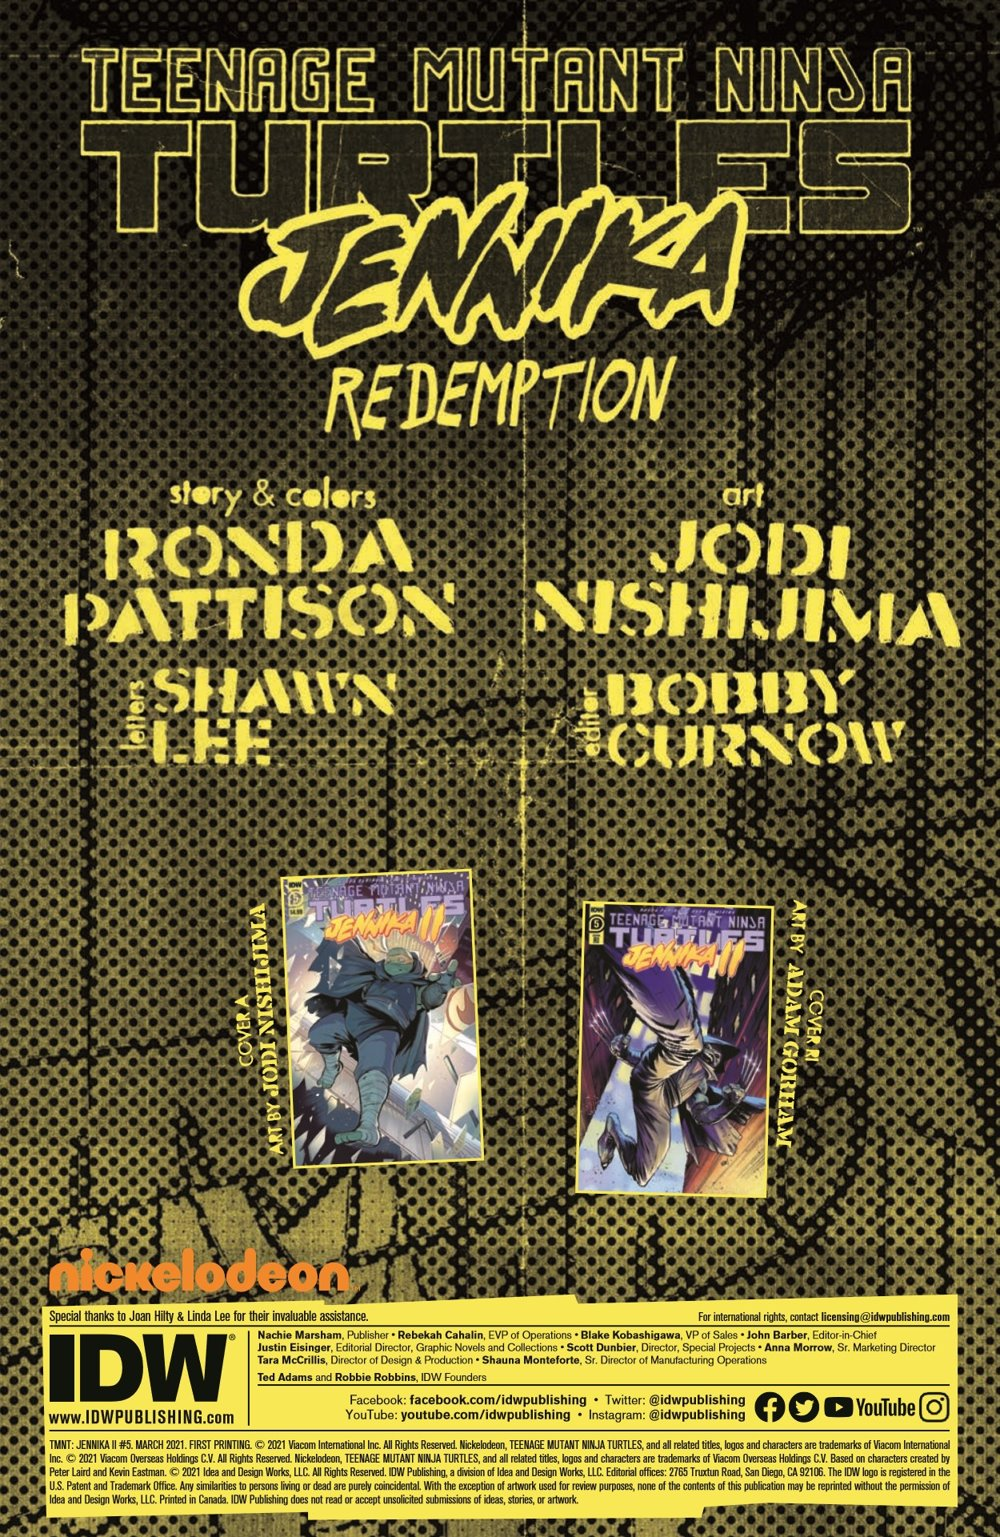 TMNT-JennikaII_05_pr-2 ComicList Previews: TEENAGE MUTANT NINJA TURTLES JENNIKA II #5 (OF 6)